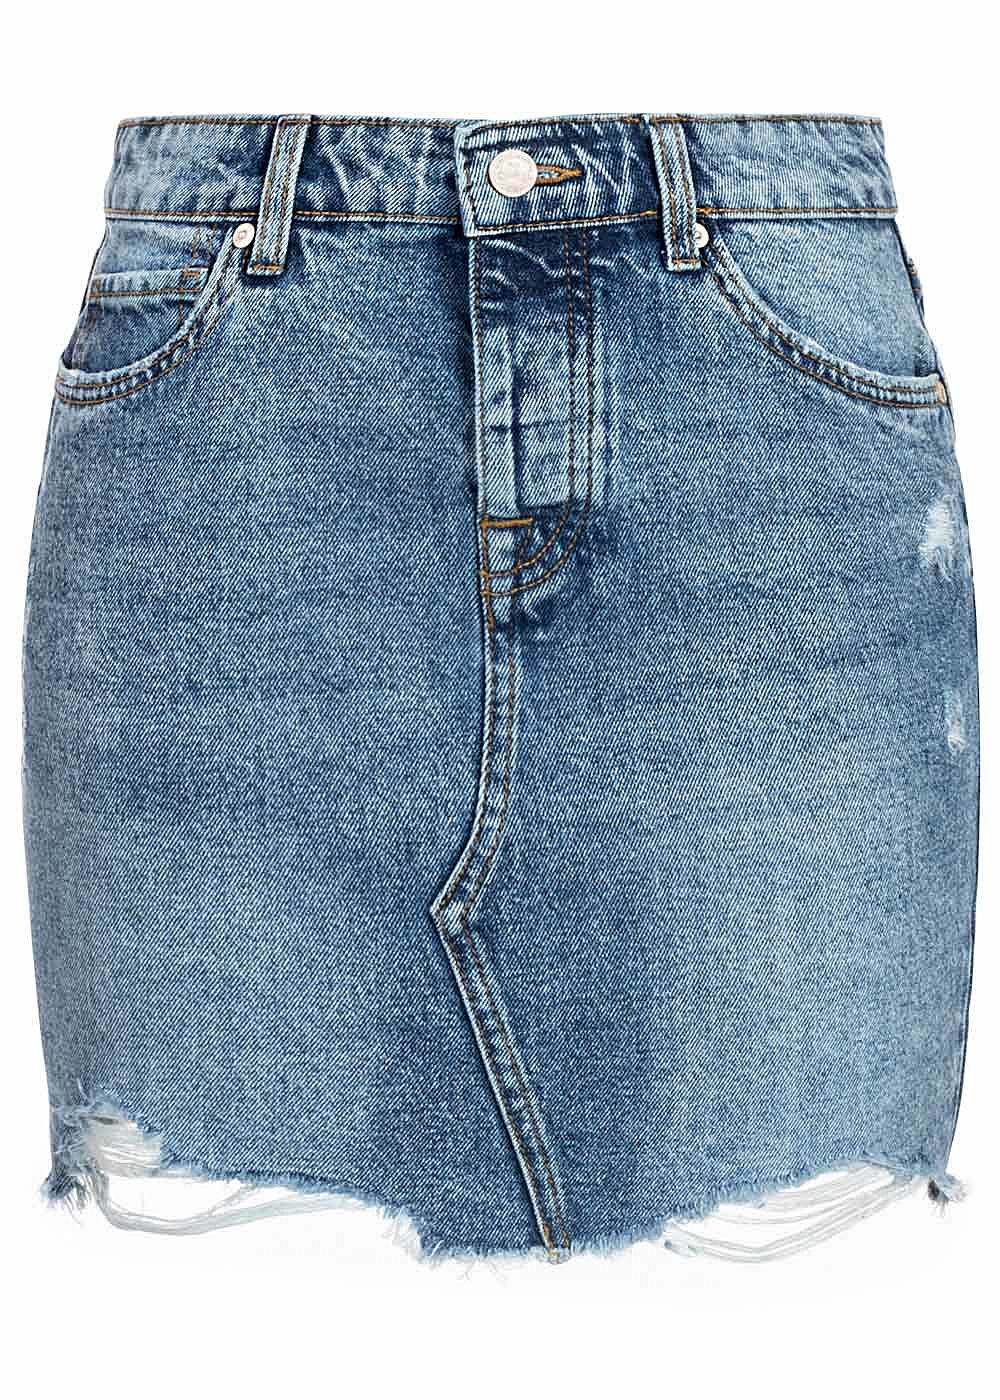 ONLY Damen NOOS Jeans Rock Destroy Look Fransen 5-Pockets hell blau denim - Art.-Nr.: 20031416